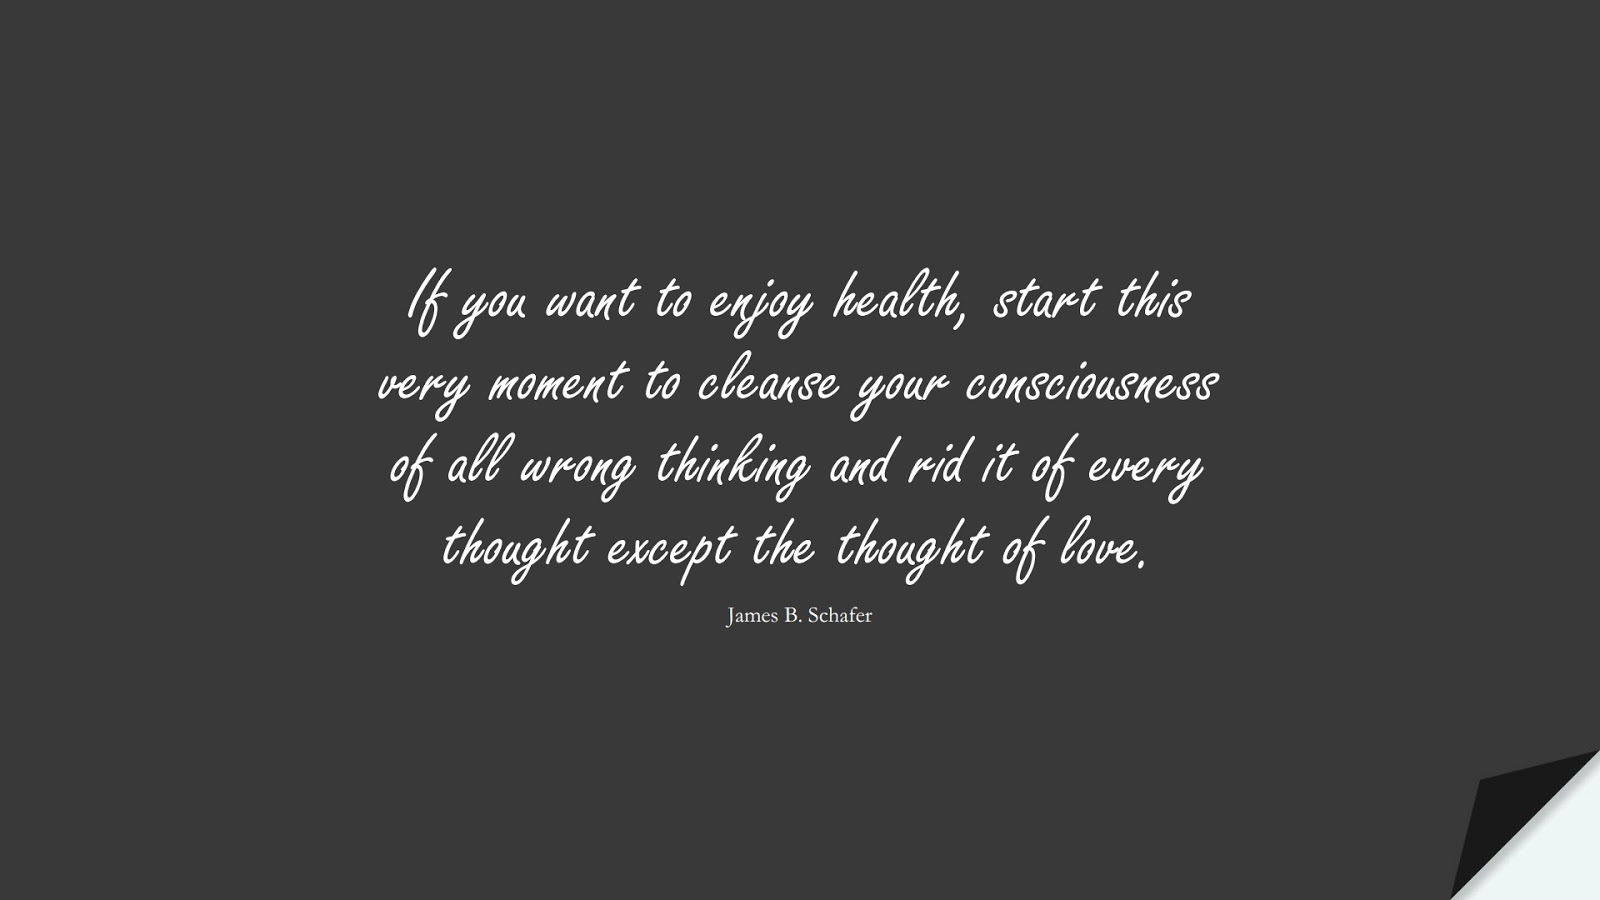 If you want to enjoy health, start this very moment to cleanse your consciousness of all wrong thinking and rid it of every thought except the thought of love. (James B. Schafer);  #HealthQuotes